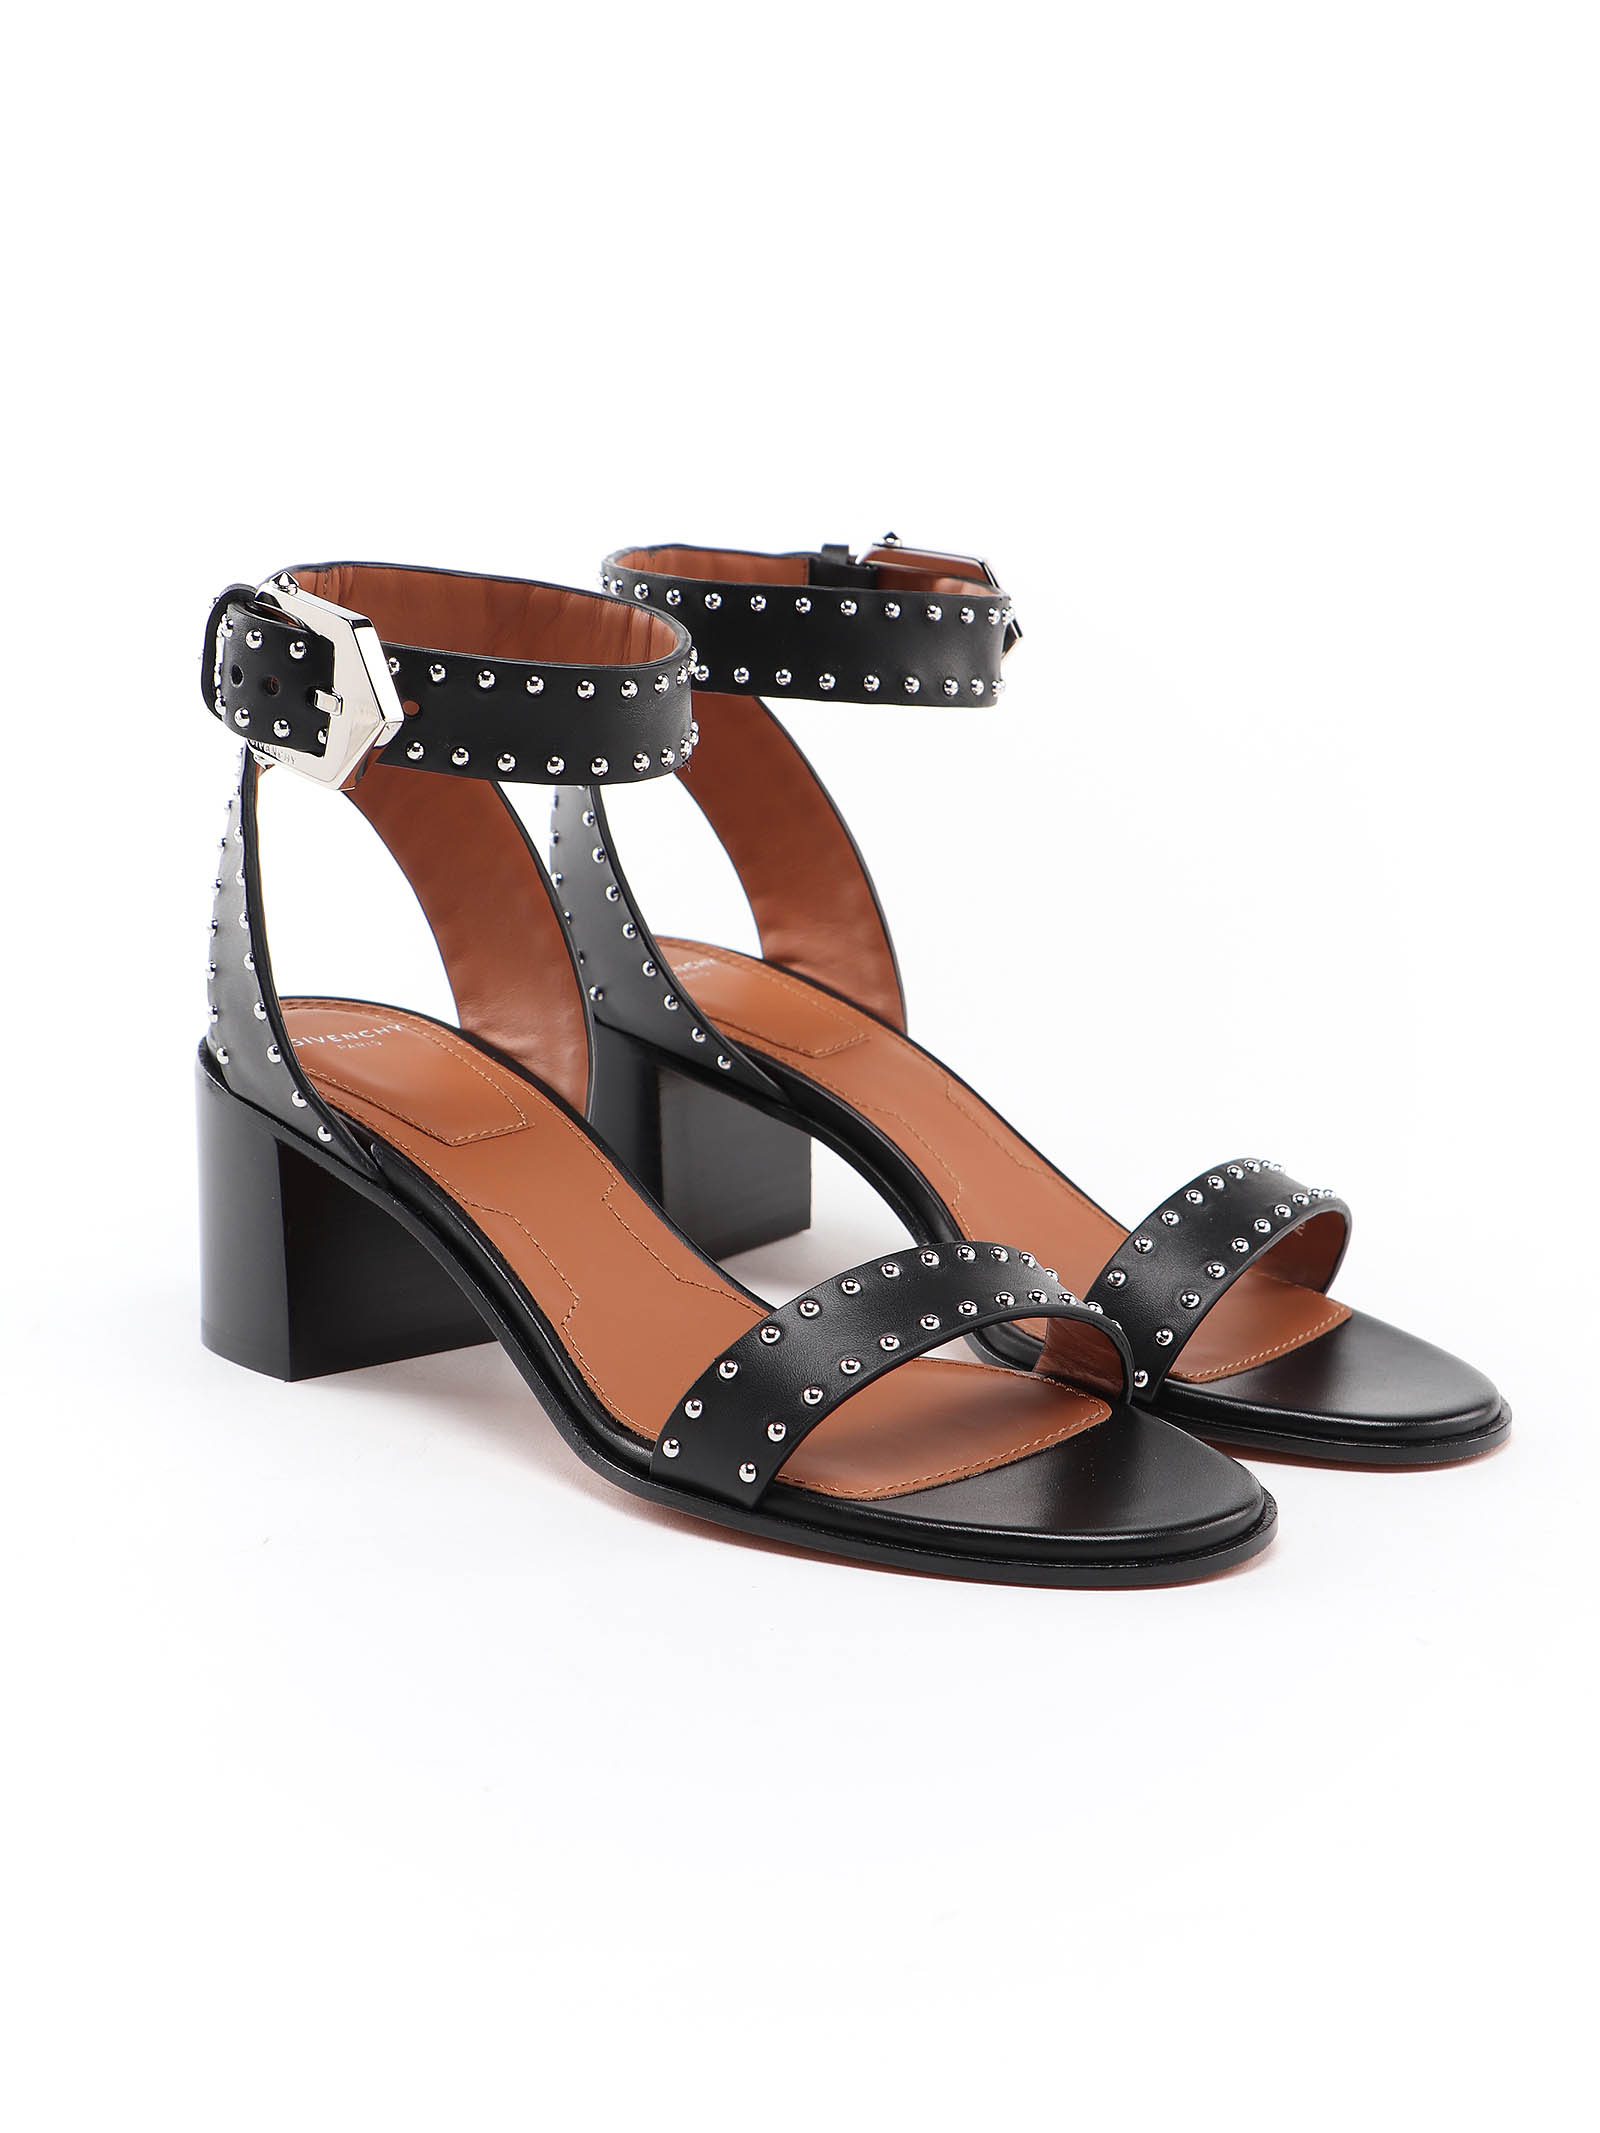 Picture of Givenchy | Sandal 60Mm